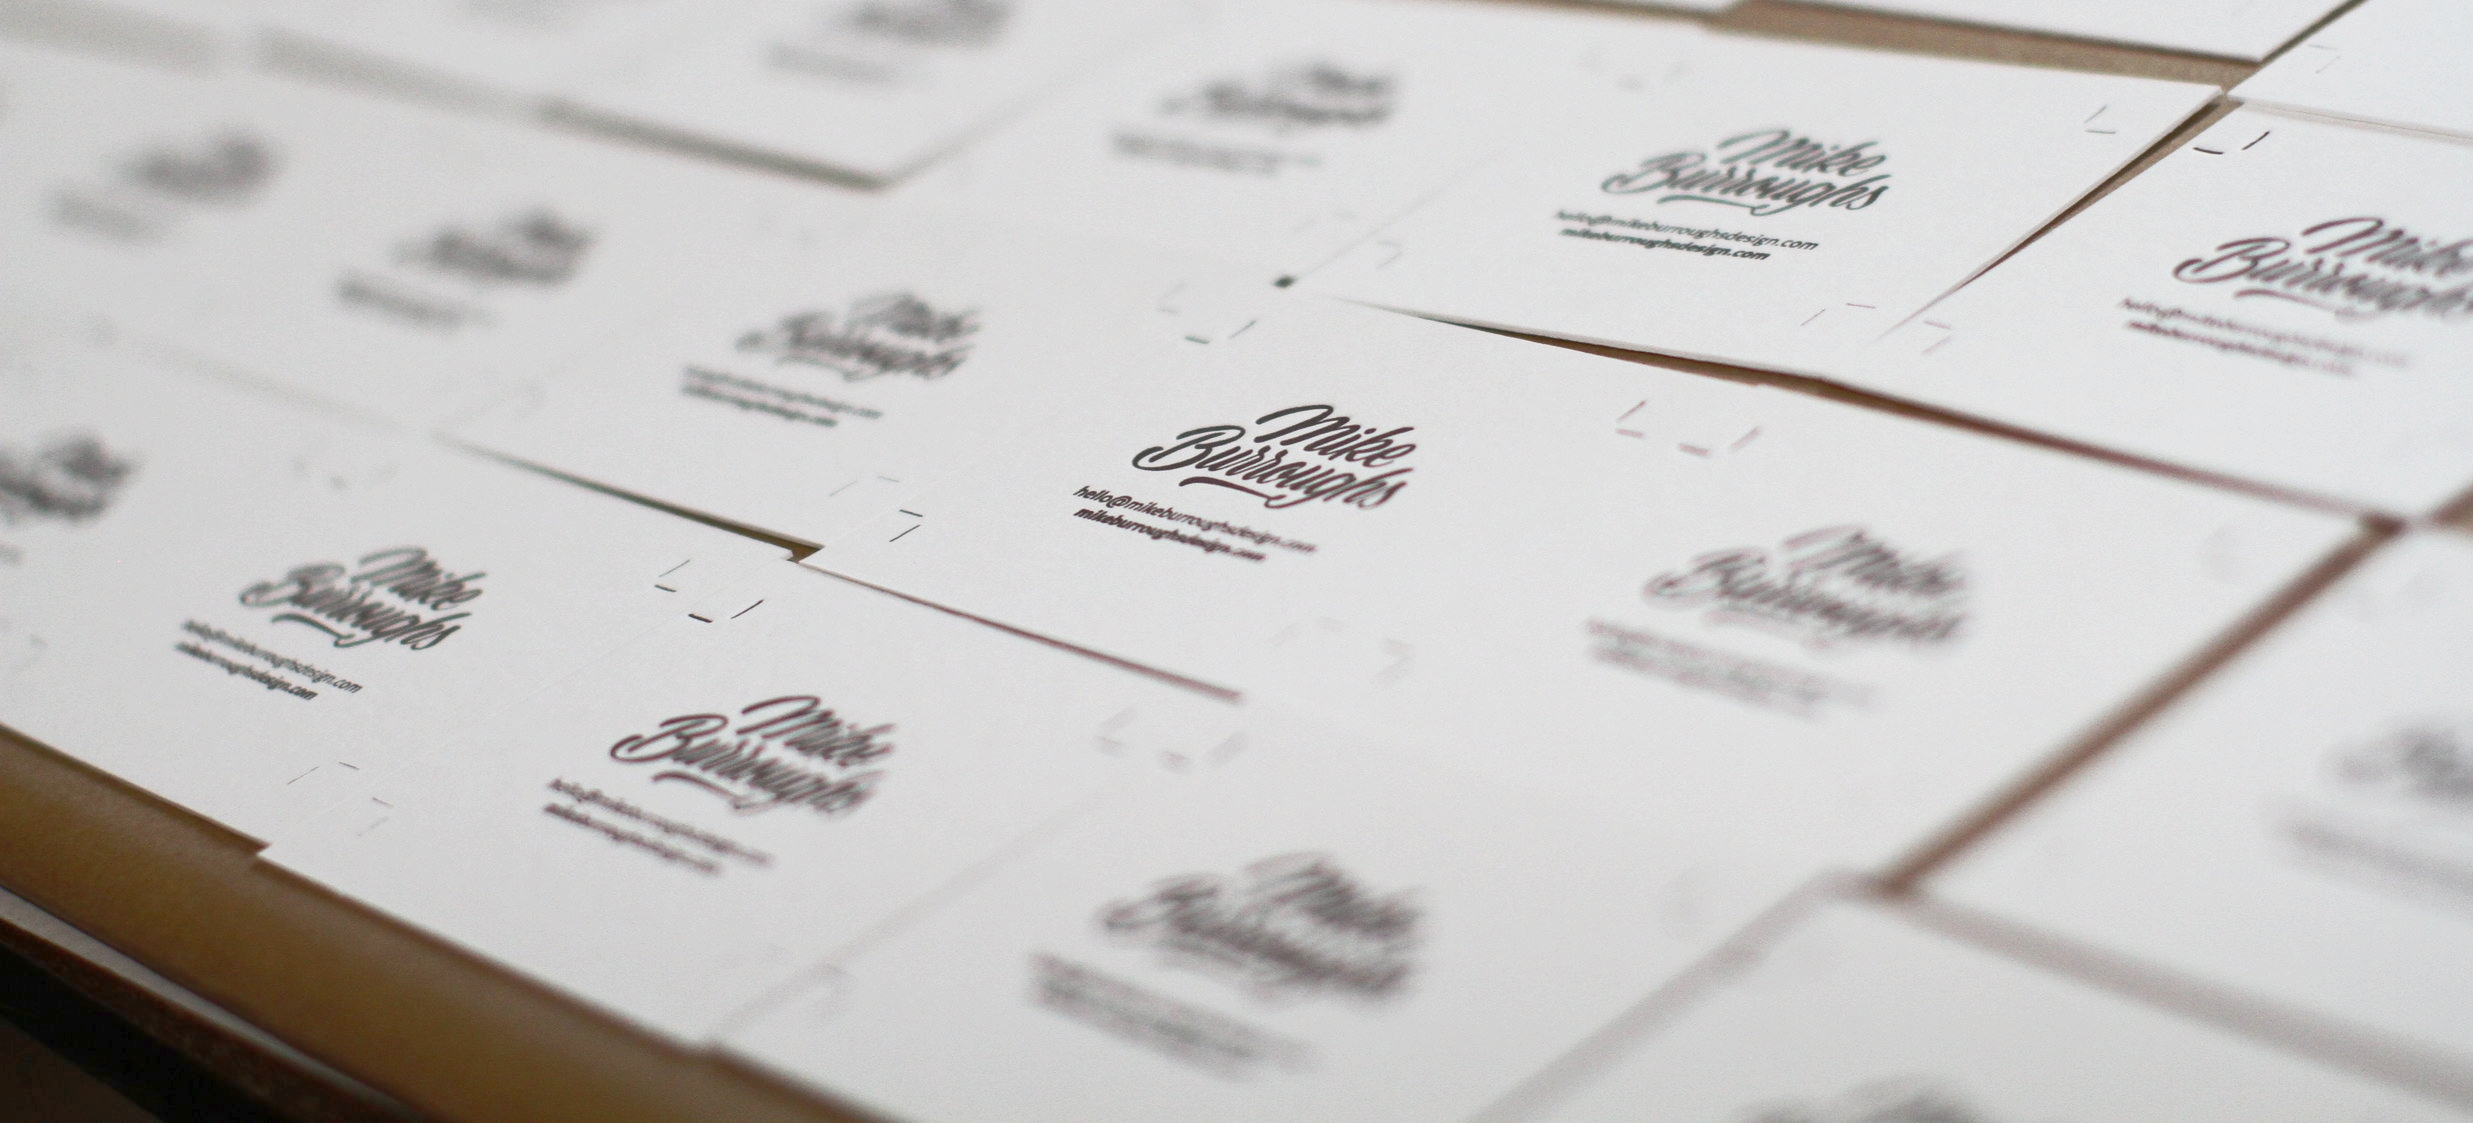 Business Cards for NYC Based Hand Letterer Mike Burroughs